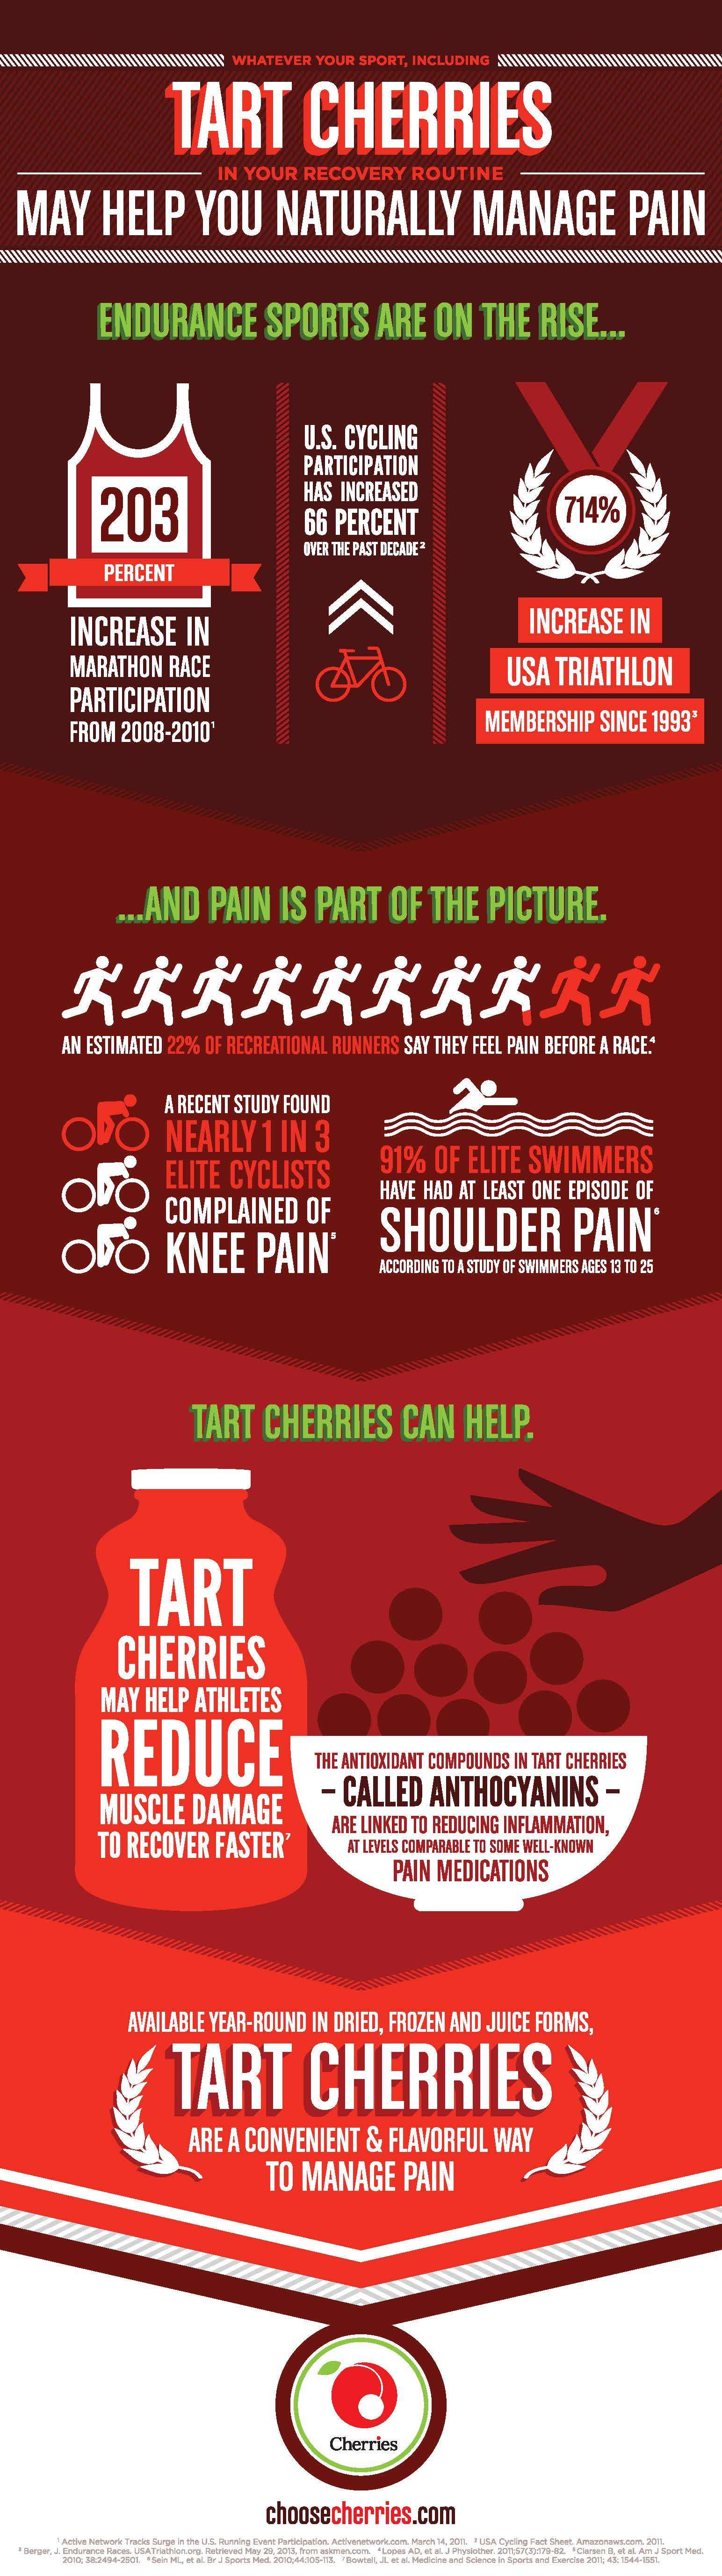 Tart Cherries and Endurance Sports